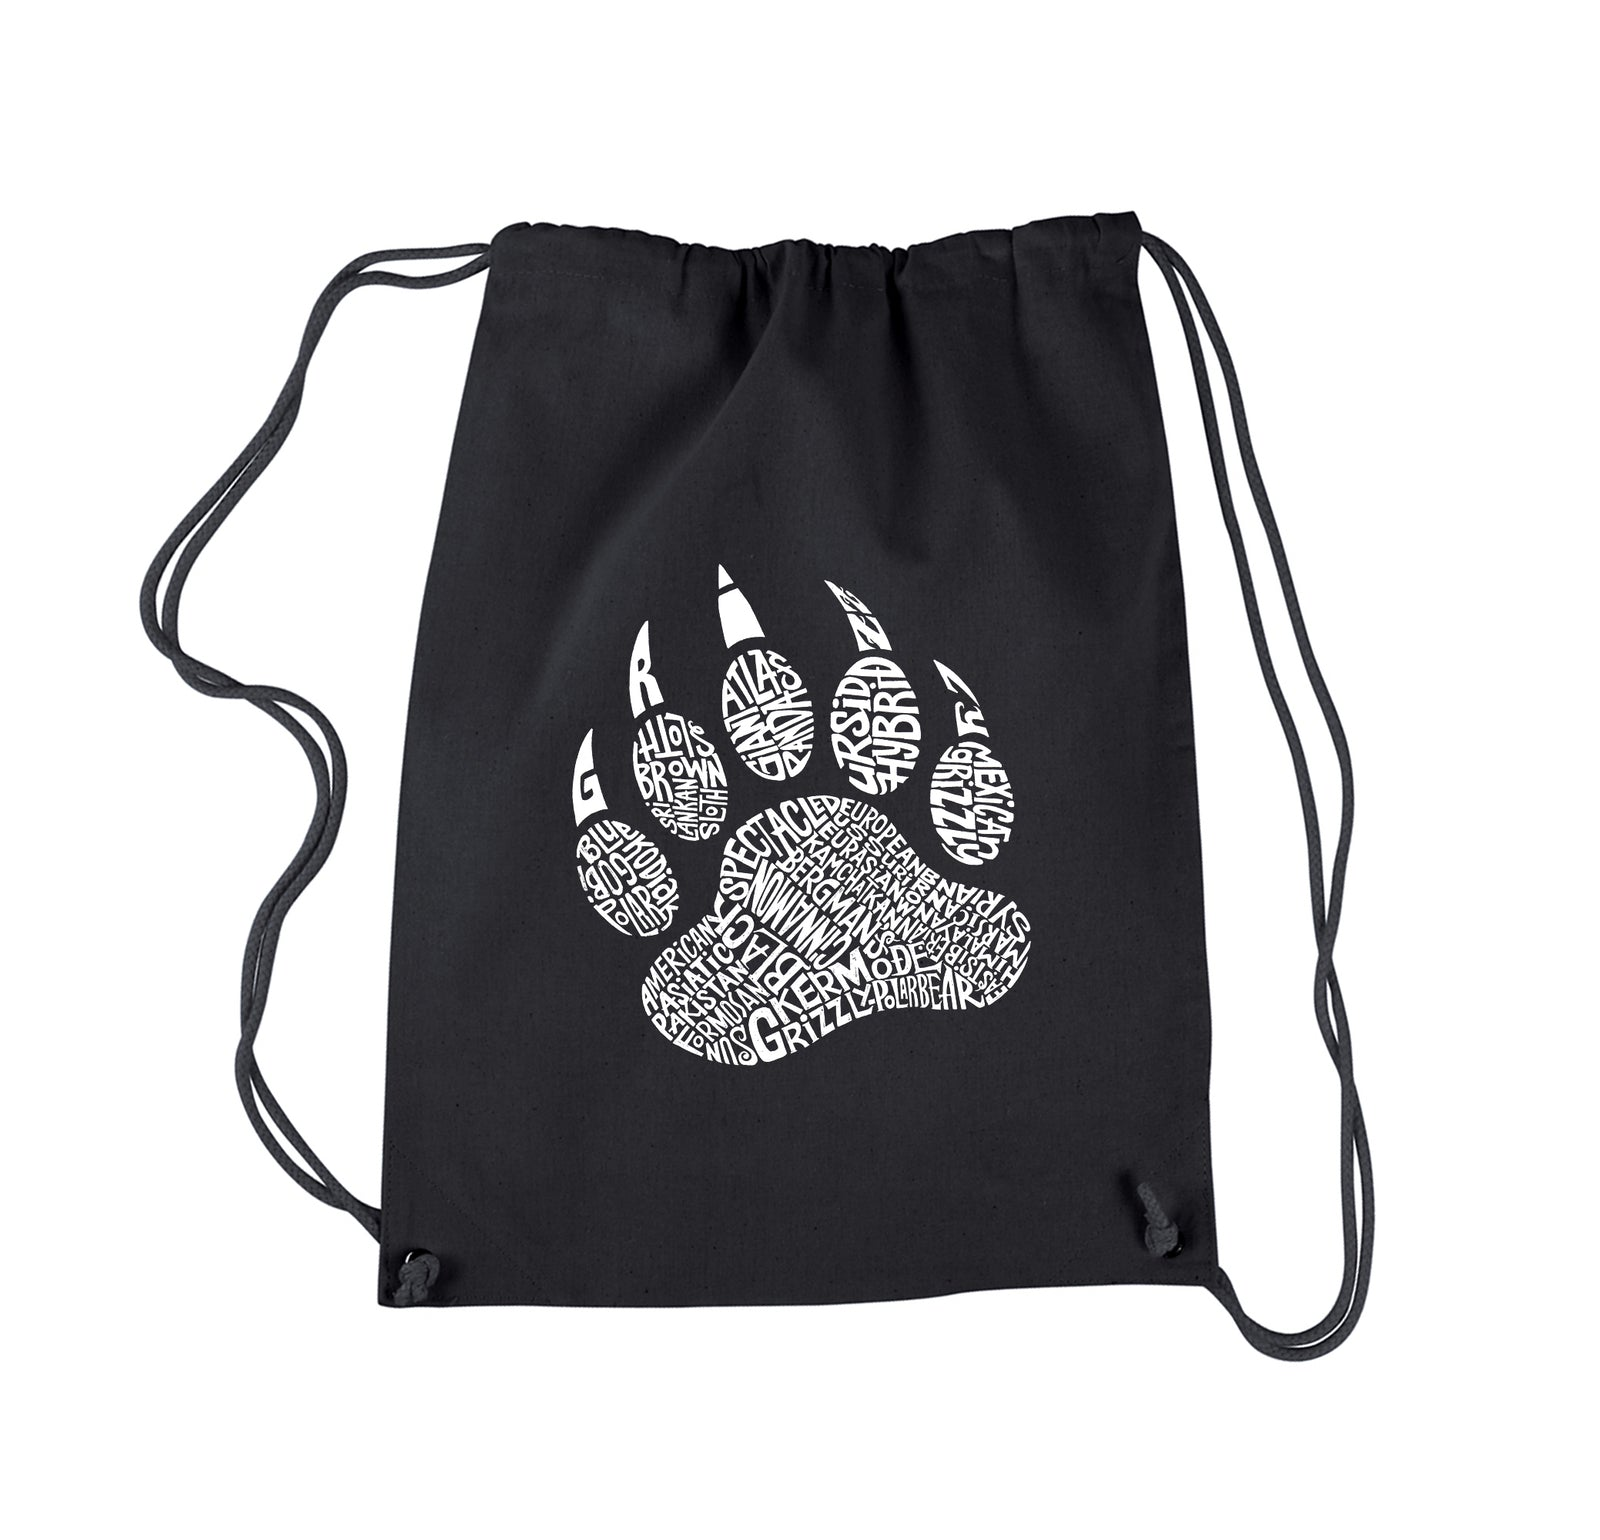 Drawstring Word Art Backpack - Types of Bears